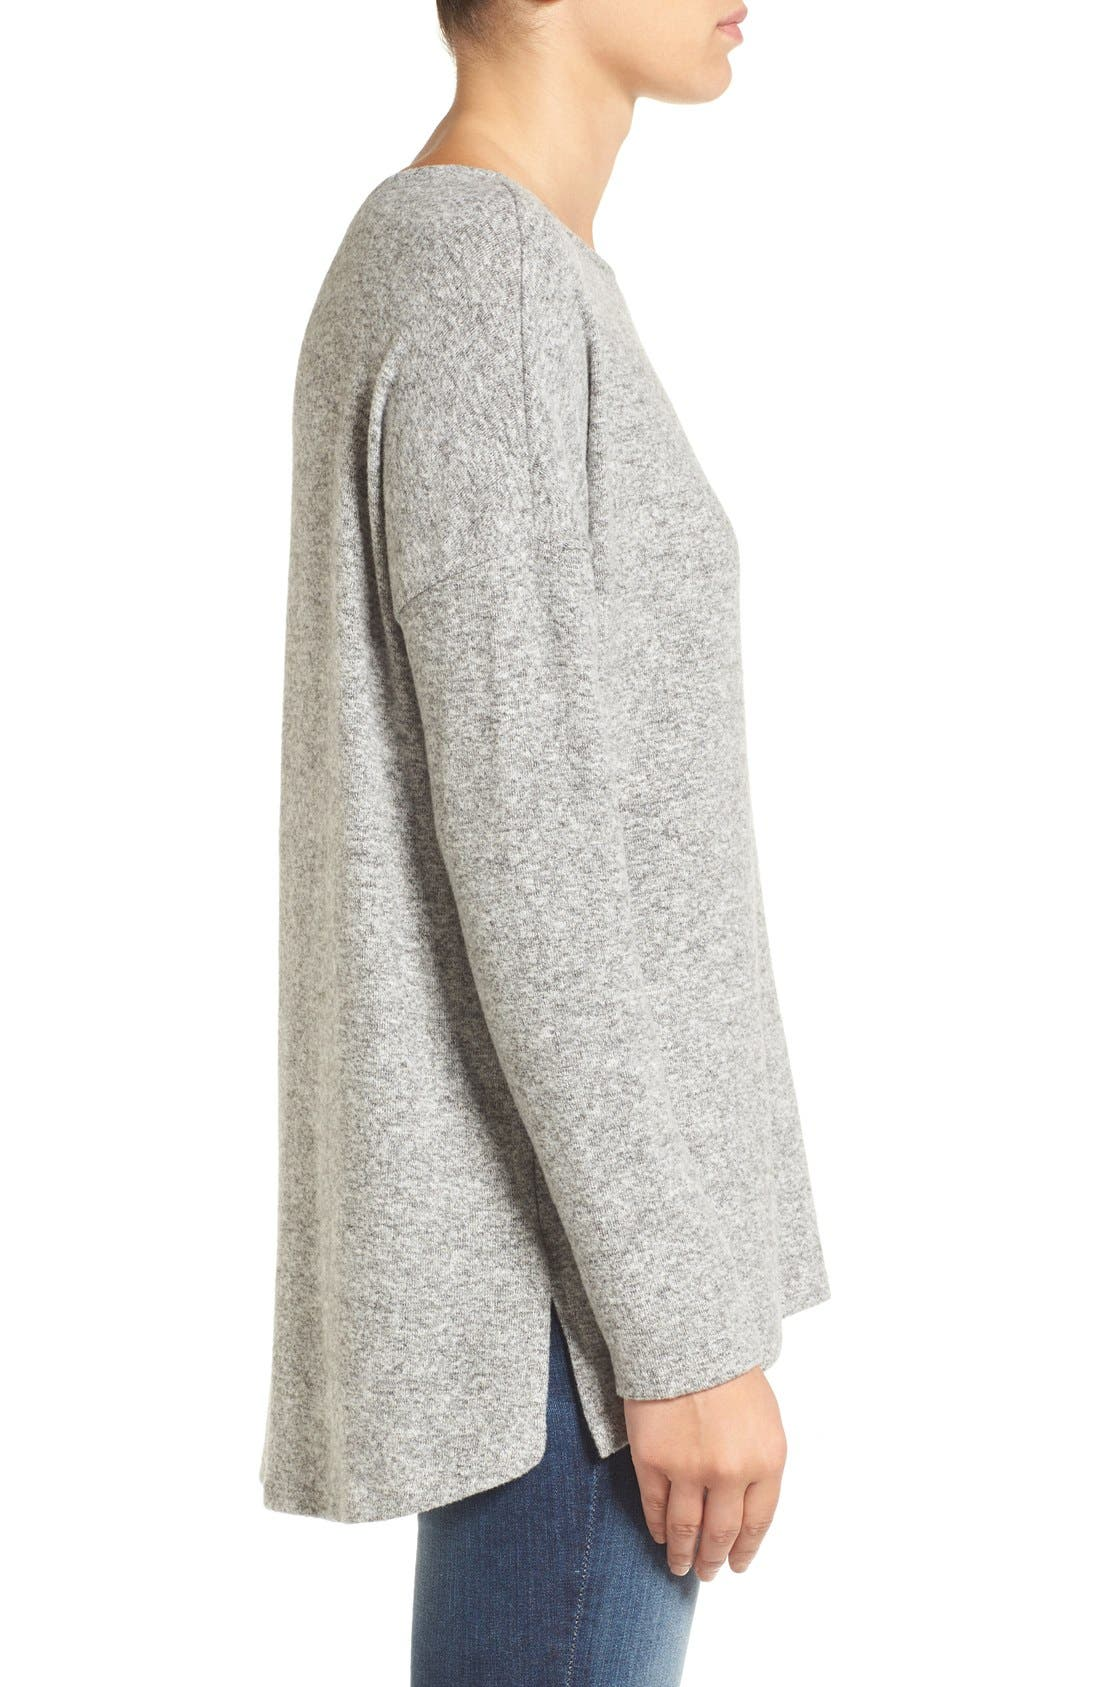 Alternate Image 3  - Gibson Cozy Fleece Ballet Neck High/Low Pullover (Regular & Petite)